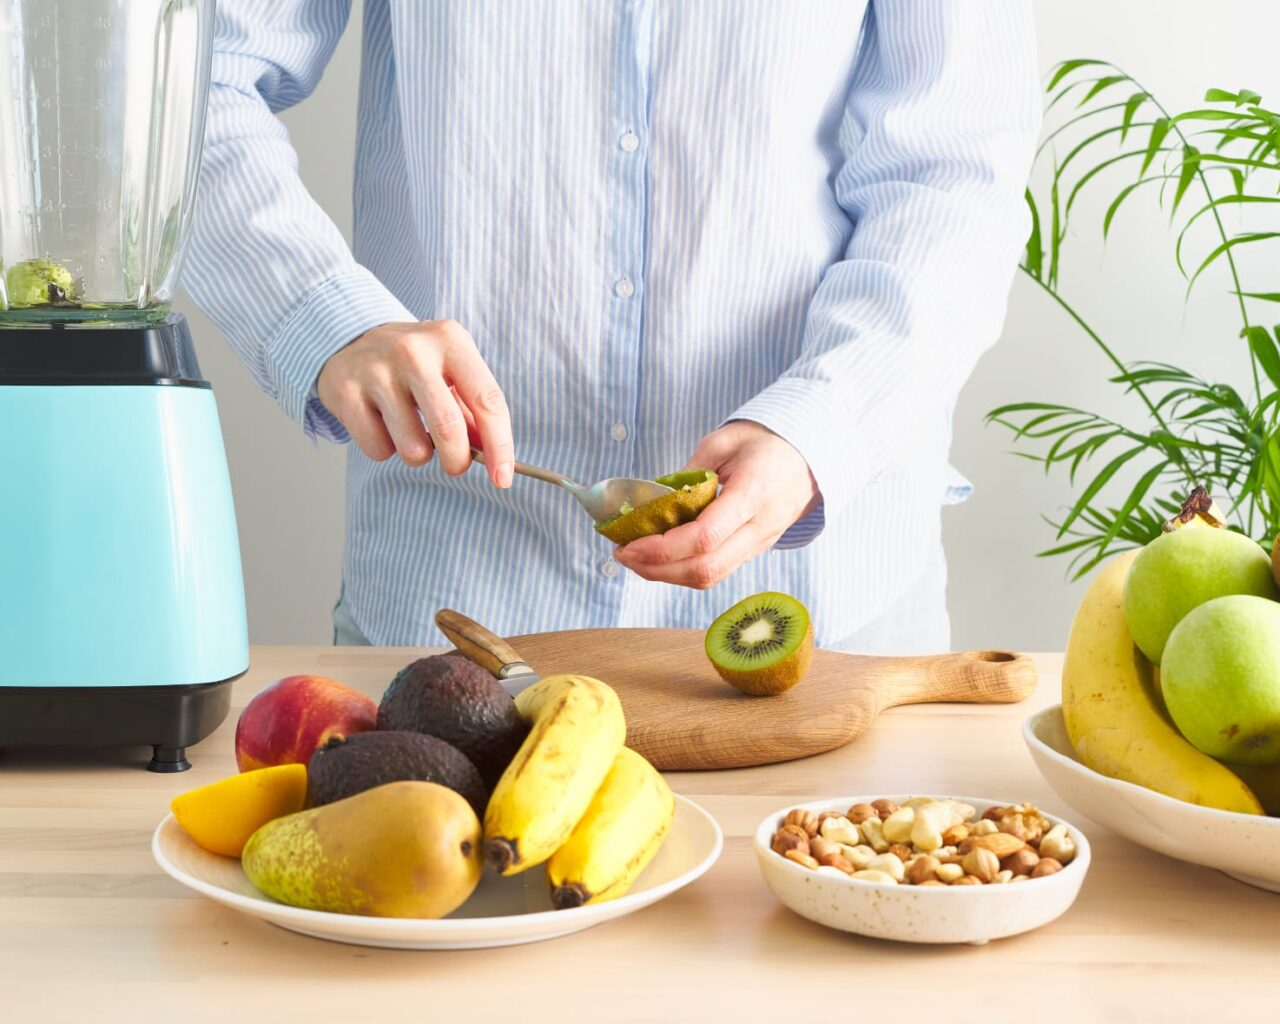 DASH Diet How is it Good For Total Health Control